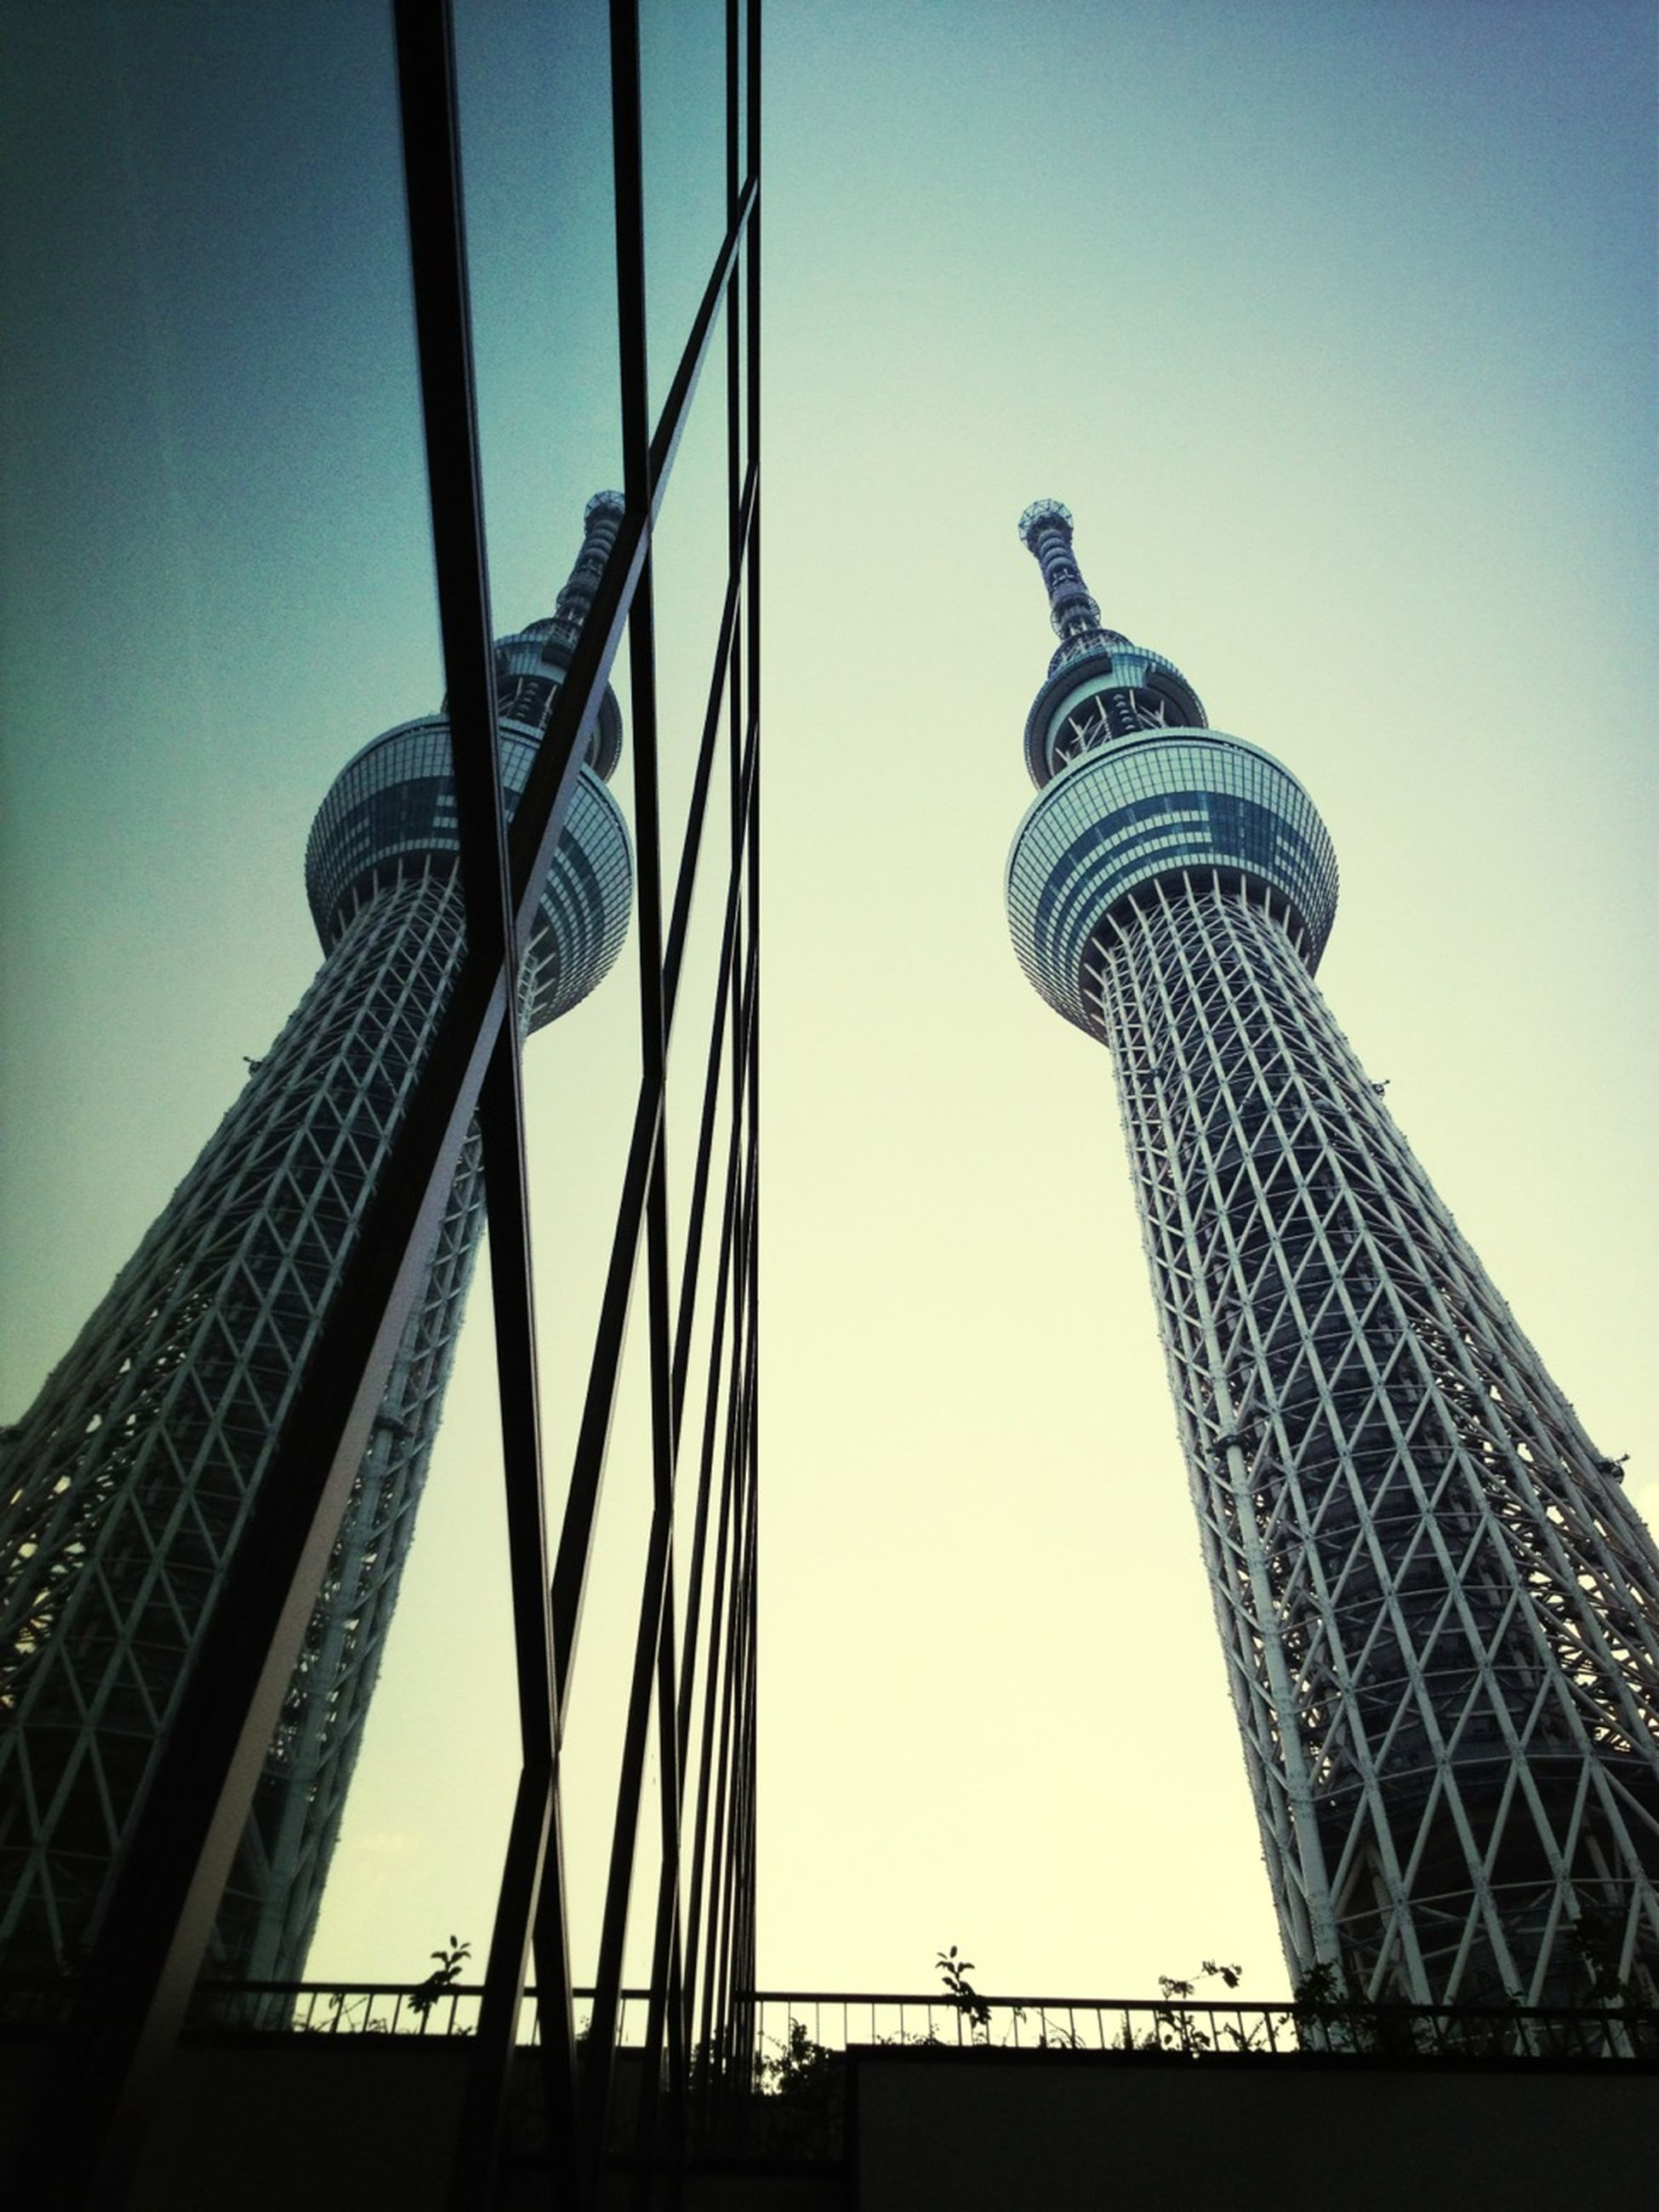 built structure, architecture, tower, low angle view, tall - high, international landmark, famous place, travel destinations, capital cities, tourism, building exterior, clear sky, travel, city, communications tower, skyscraper, eiffel tower, metal, tall, sky